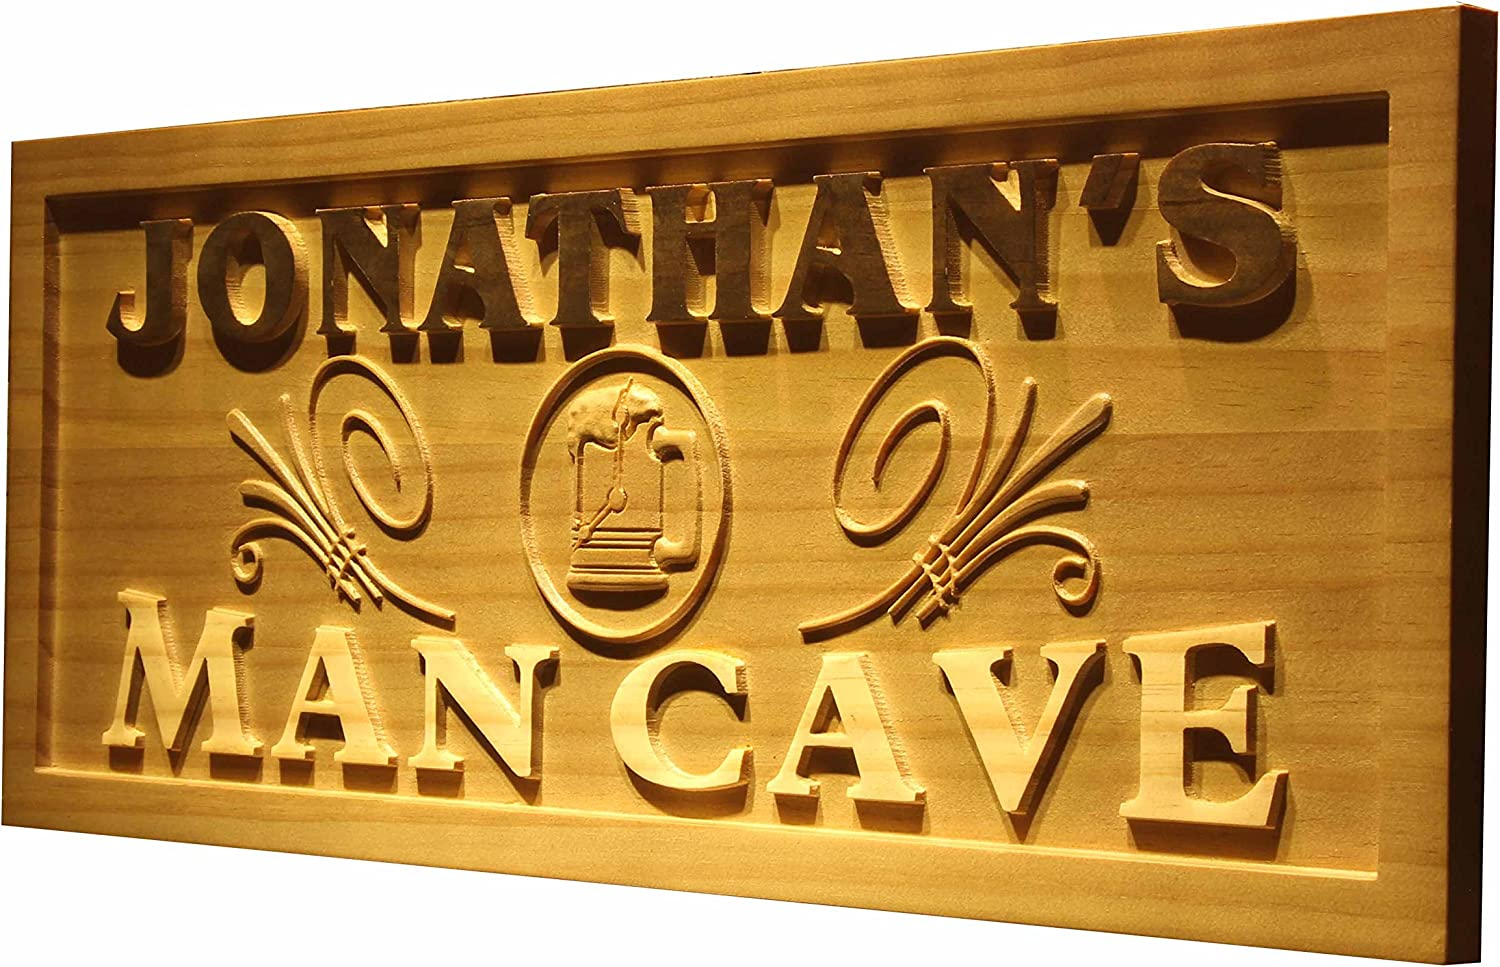 wpa0169 Name Personalized Man CAVE Beer Mug Decoration Wood Engraved Wooden Sign Medium 18.25 x 7.25